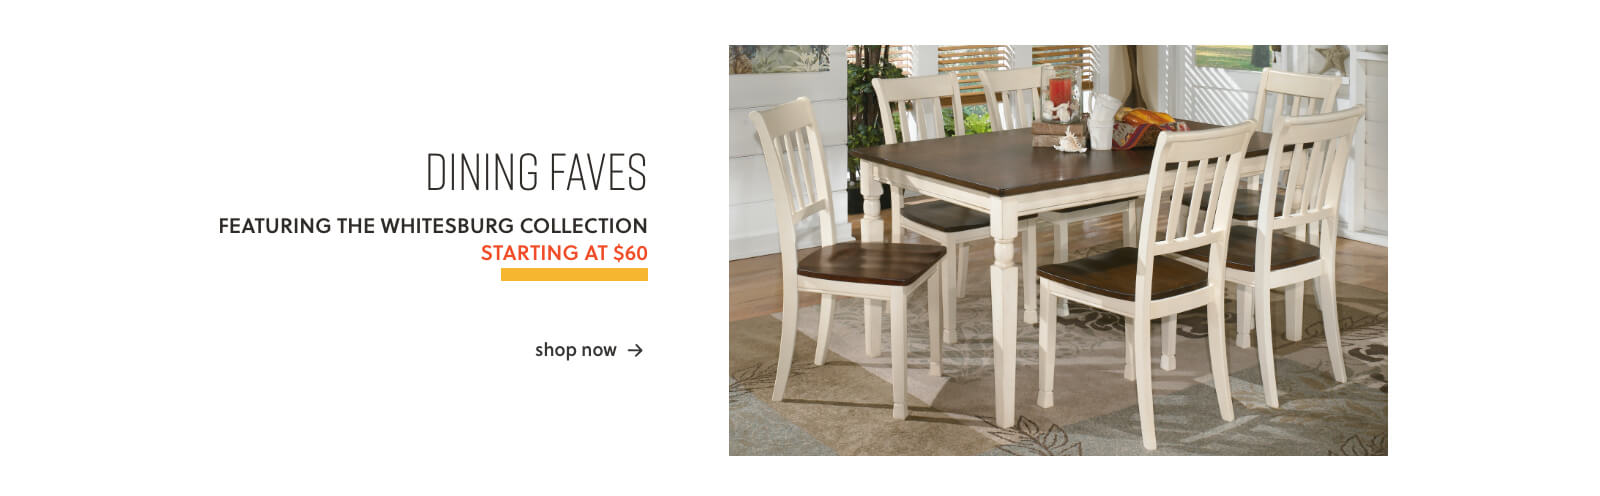 Meubles Accent Furniture Rockland Ashley Furniture Homestore Home Furniture Decor Ashley Homestore